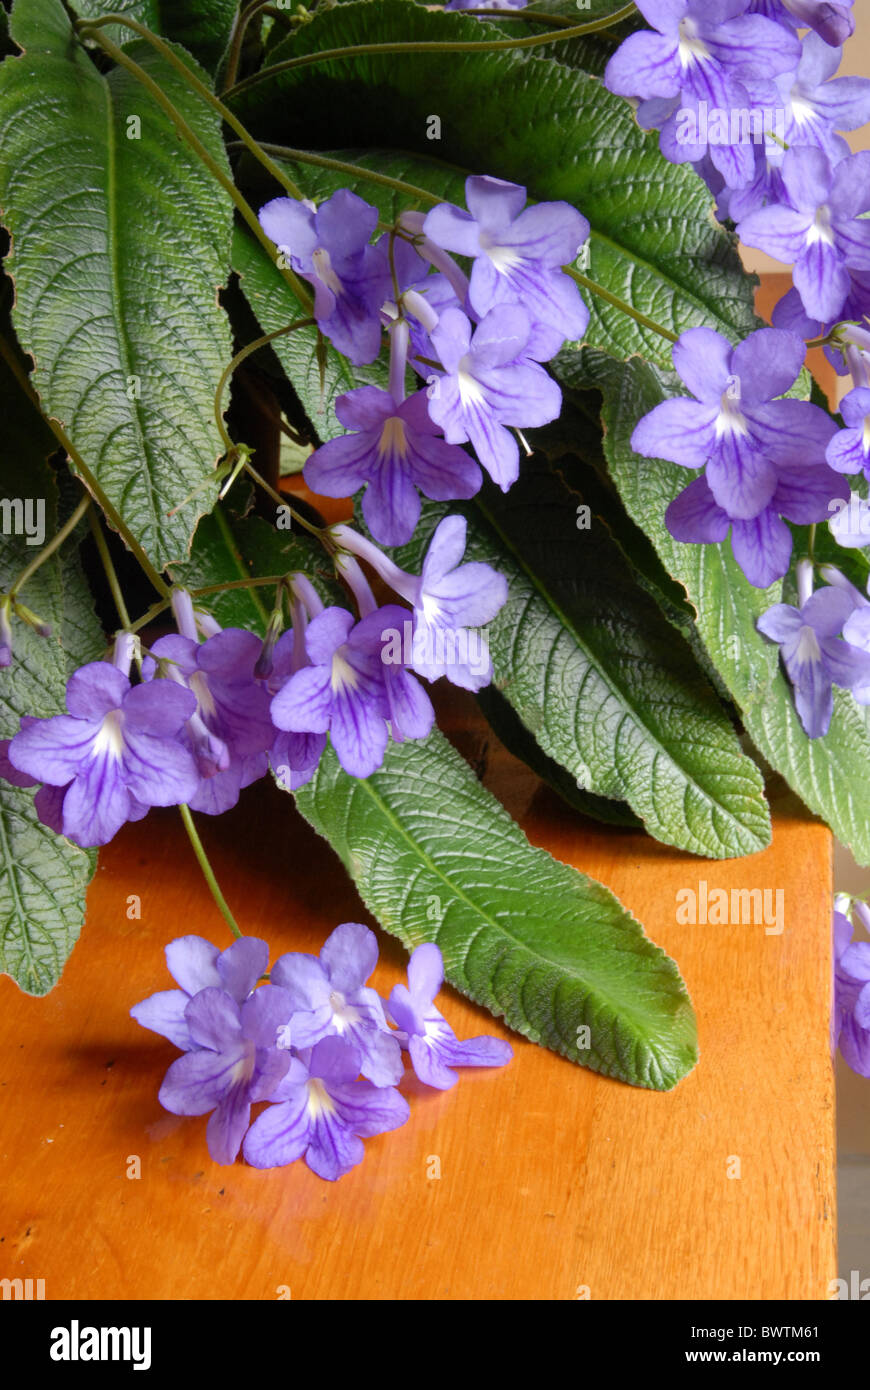 Streptocarpus indoor indoors plant cape primrose stem bloom ... on best dried flowers, succulent plant with orange flowers, house plant trees, house plants with fruit, house plants with leaves, house plants with pink, house plant identification, house plants for cats, house plants that bloom, dollhouse miniature plants and flowers, house plant purple underside, house plants with lily, house plants with red stems, variegated flowers, garden plants and flowers, potato vine plant flowers, house plants with color, house plants with butterflies, house plant purple heart,